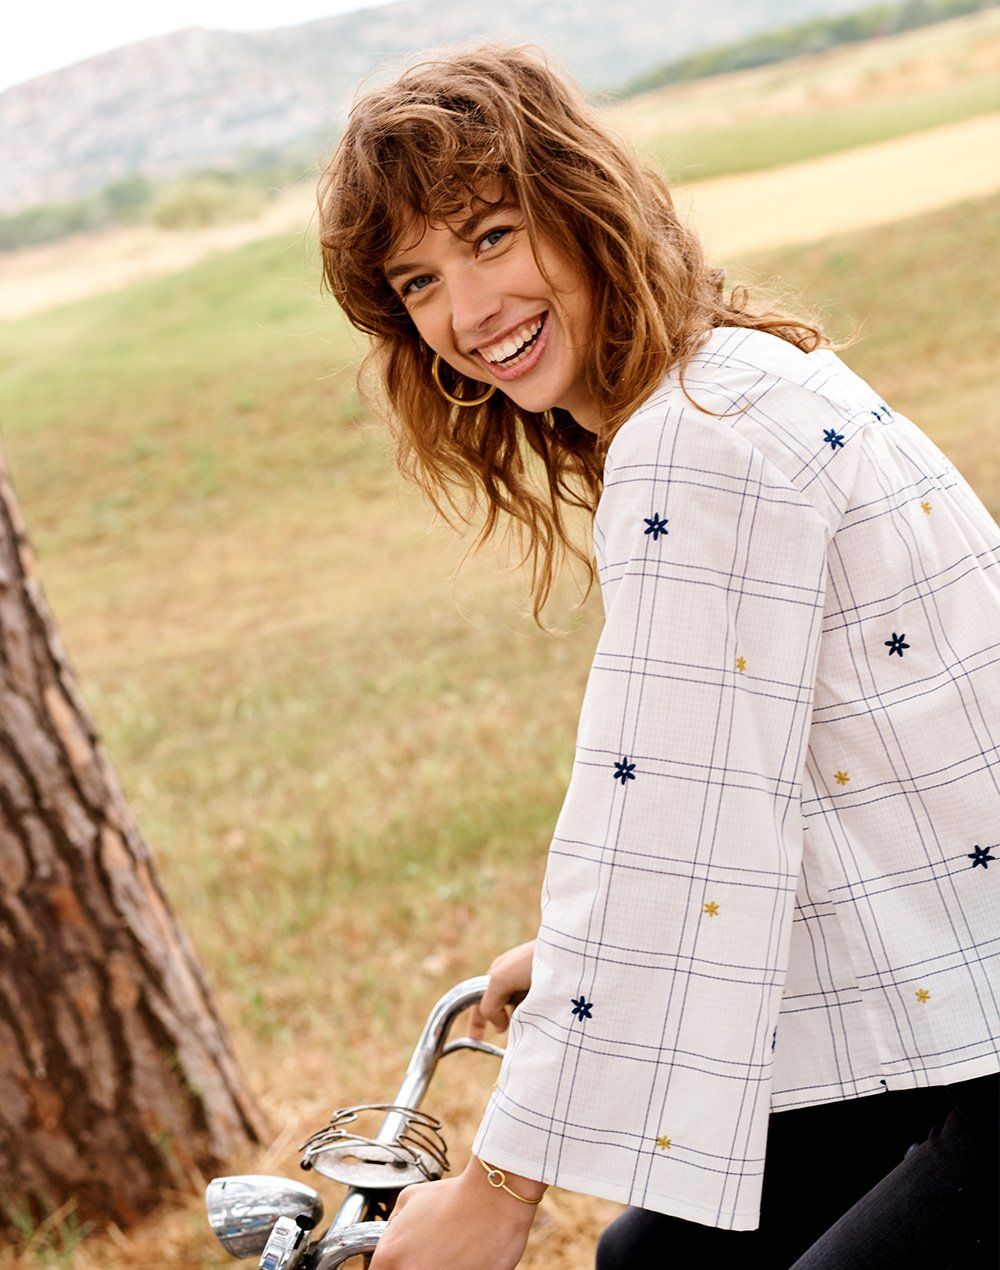 787f954bb88 madewell embroidered windowpane square-neck button-down top worn with  chunky oversized hoop earrings + aventurine bangle bracelet.